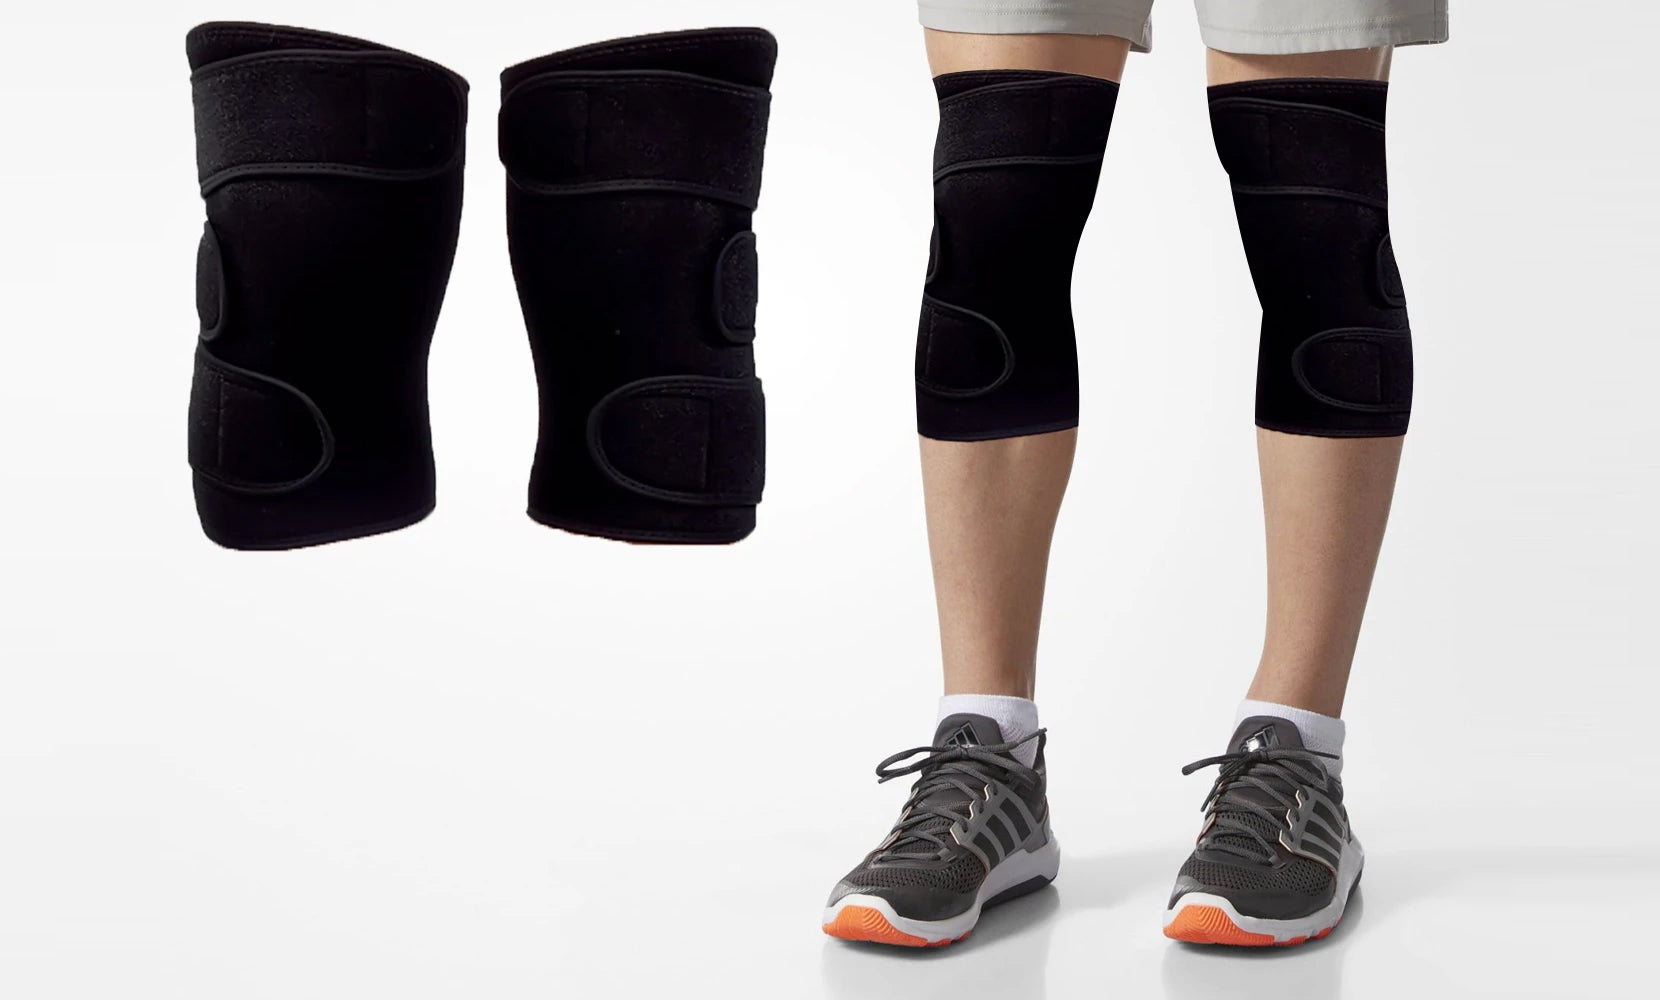 Adjustable Pain Relief Copper Infused Knee Brace